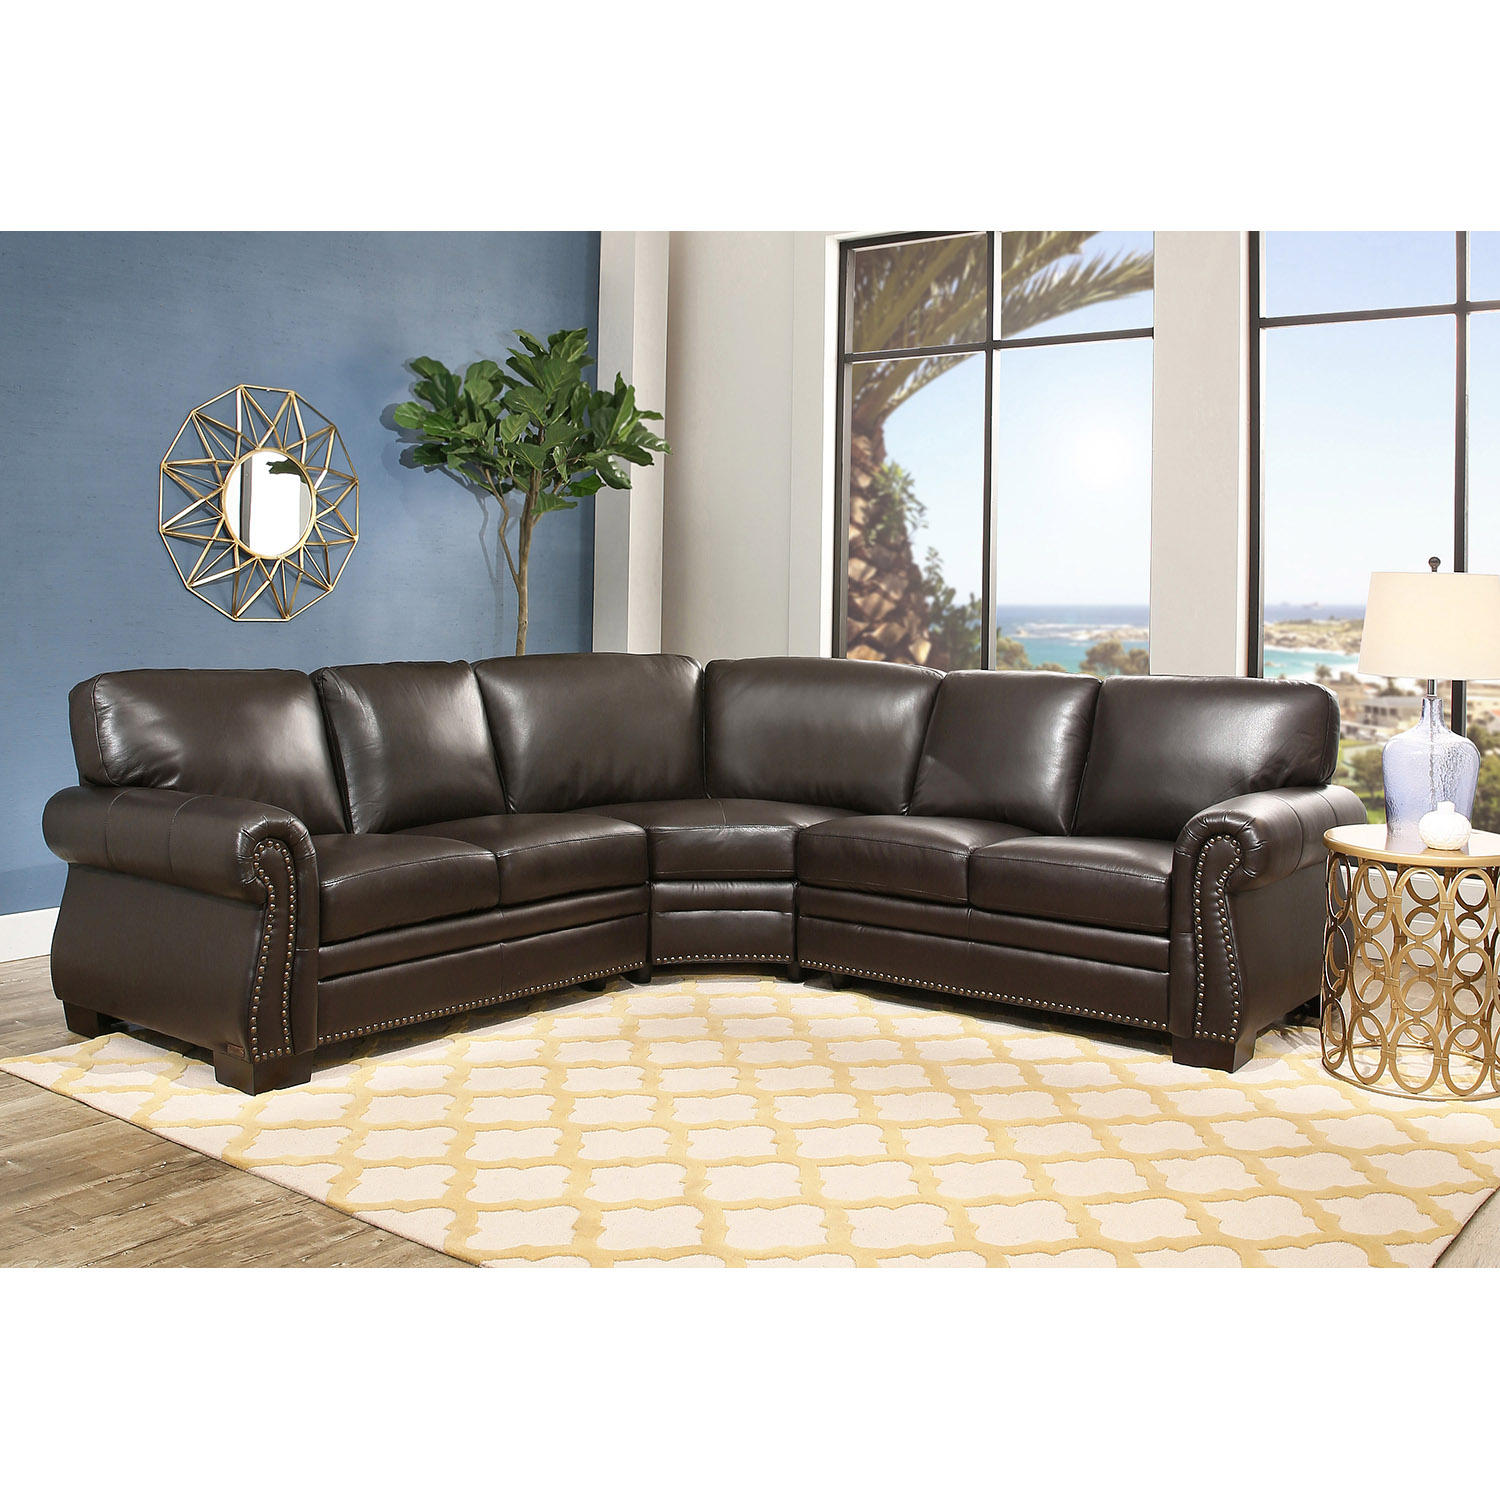 Abbyson Living Top Grain Leather Sectional Sofa